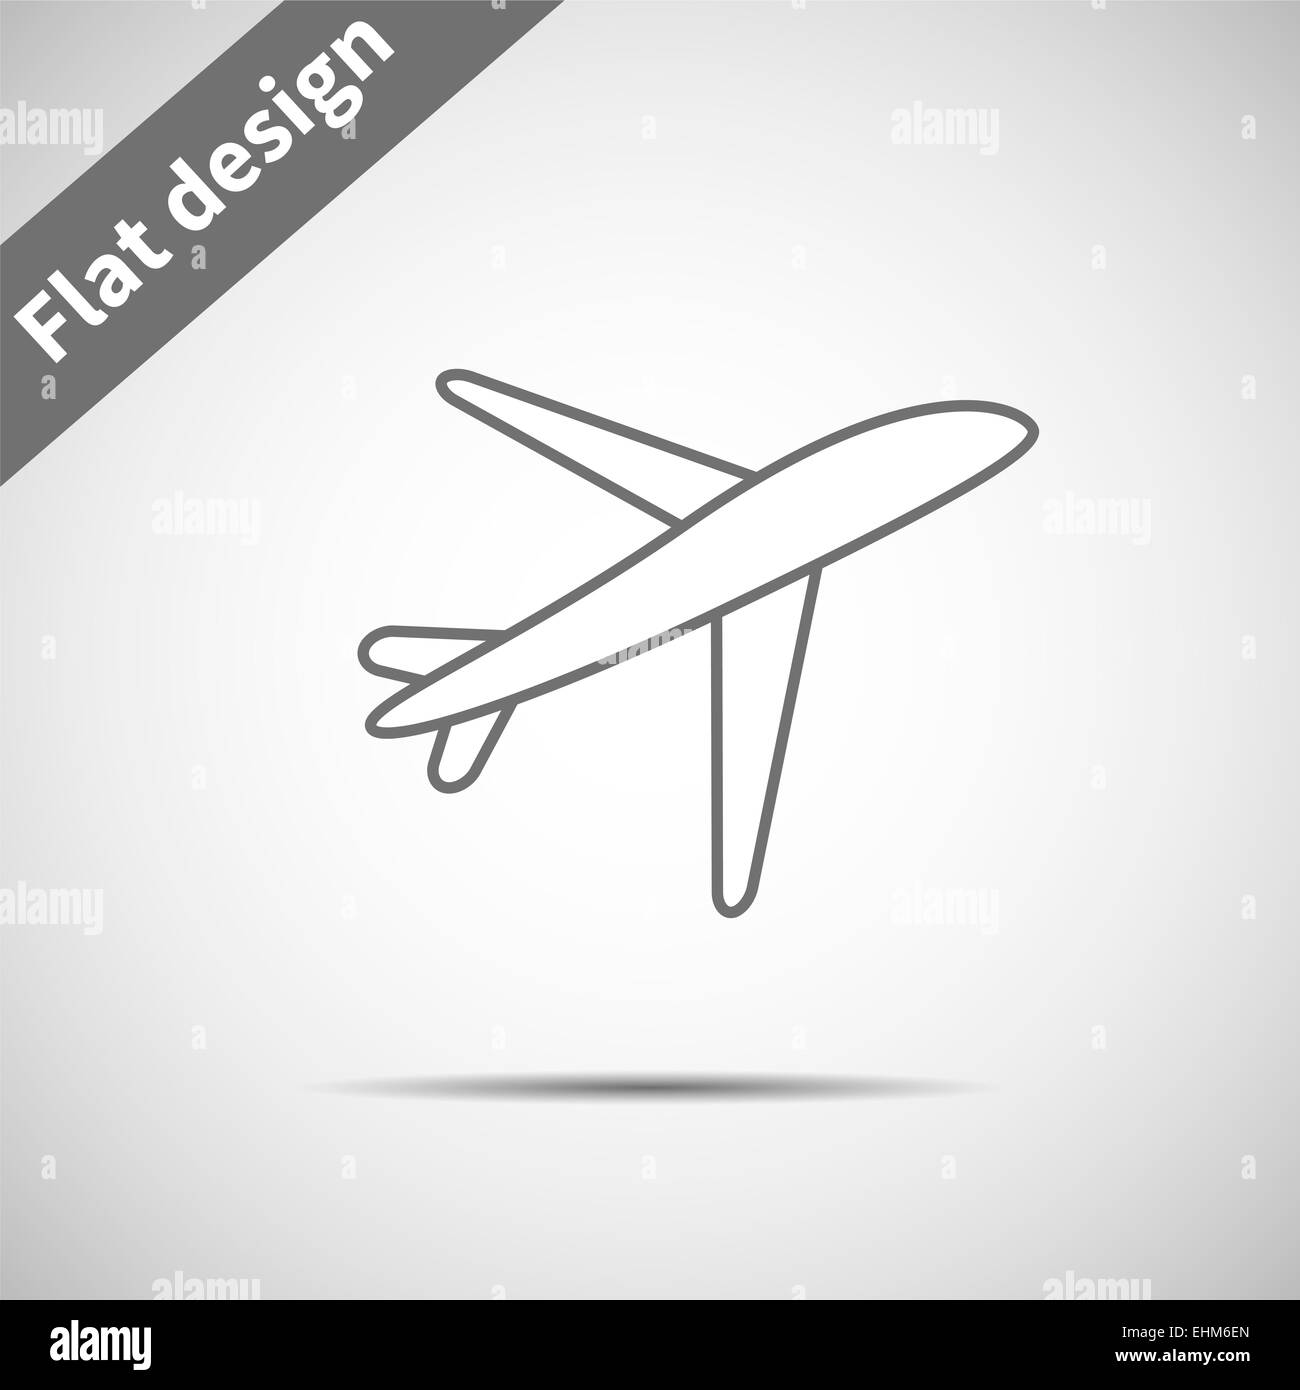 Airplane symbol. Icon gray plane line. Use banner, card, poster, flyer, banner, application, web design. Easy to - Stock Image